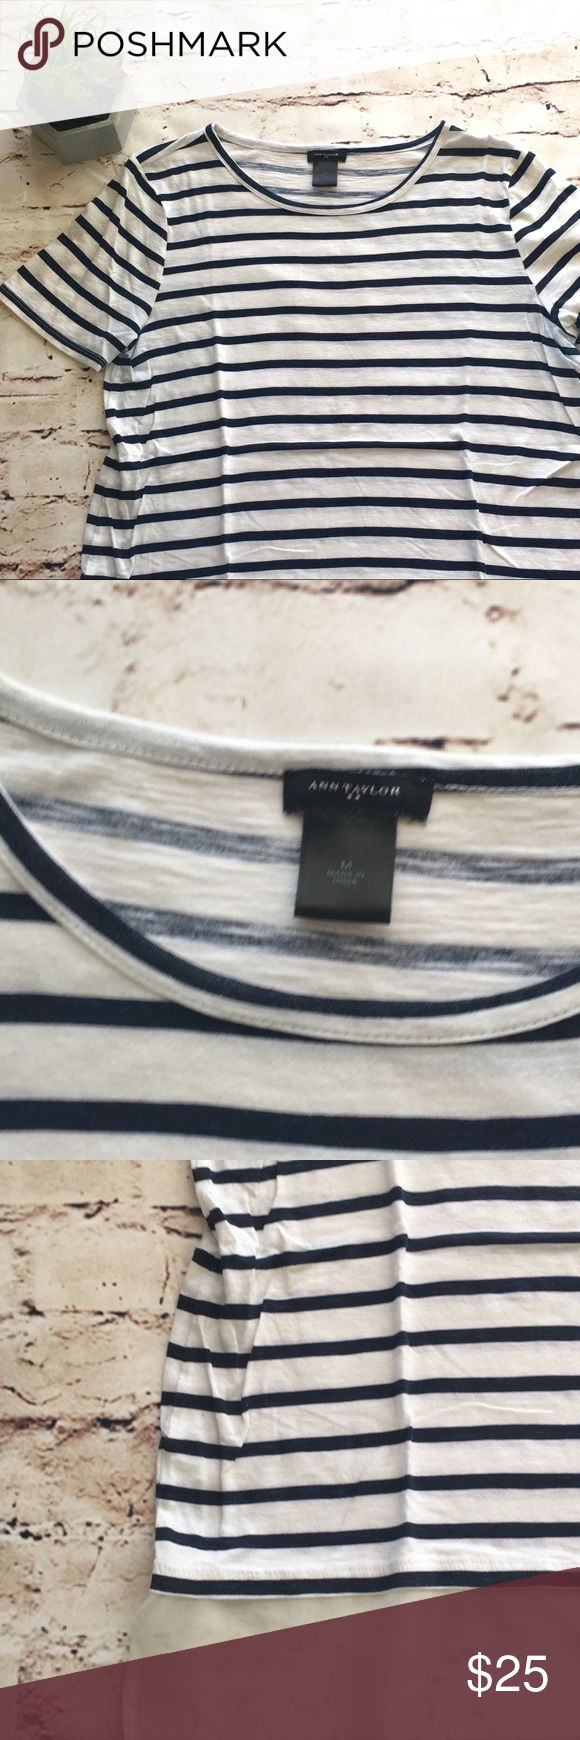 Ann Taylor | navy blue and white striped top Navy blue and white striped short sleeve top with white sheer trim. In excellent condition! Feel free to ask questions or make an offer! Bundle for a discount! 0129::253 Ann Taylor Tops Blouses